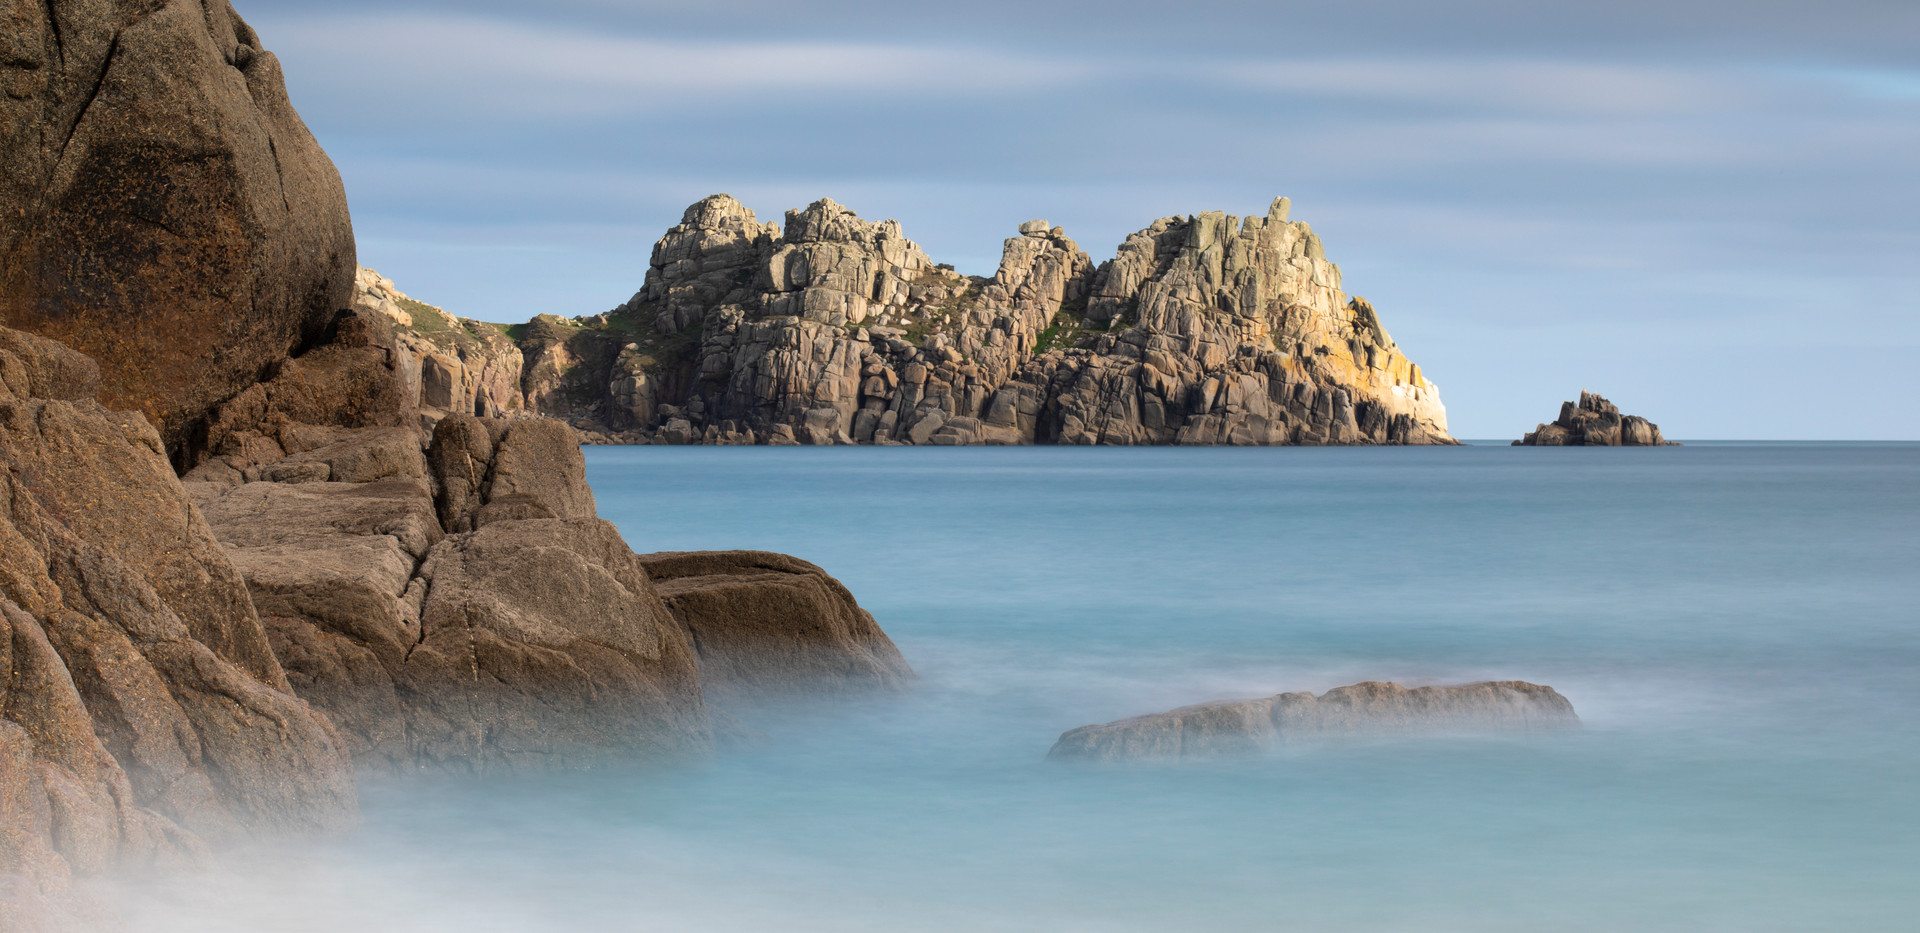 Cornwall-West-27-10-18-©WilliamGray-2.jp